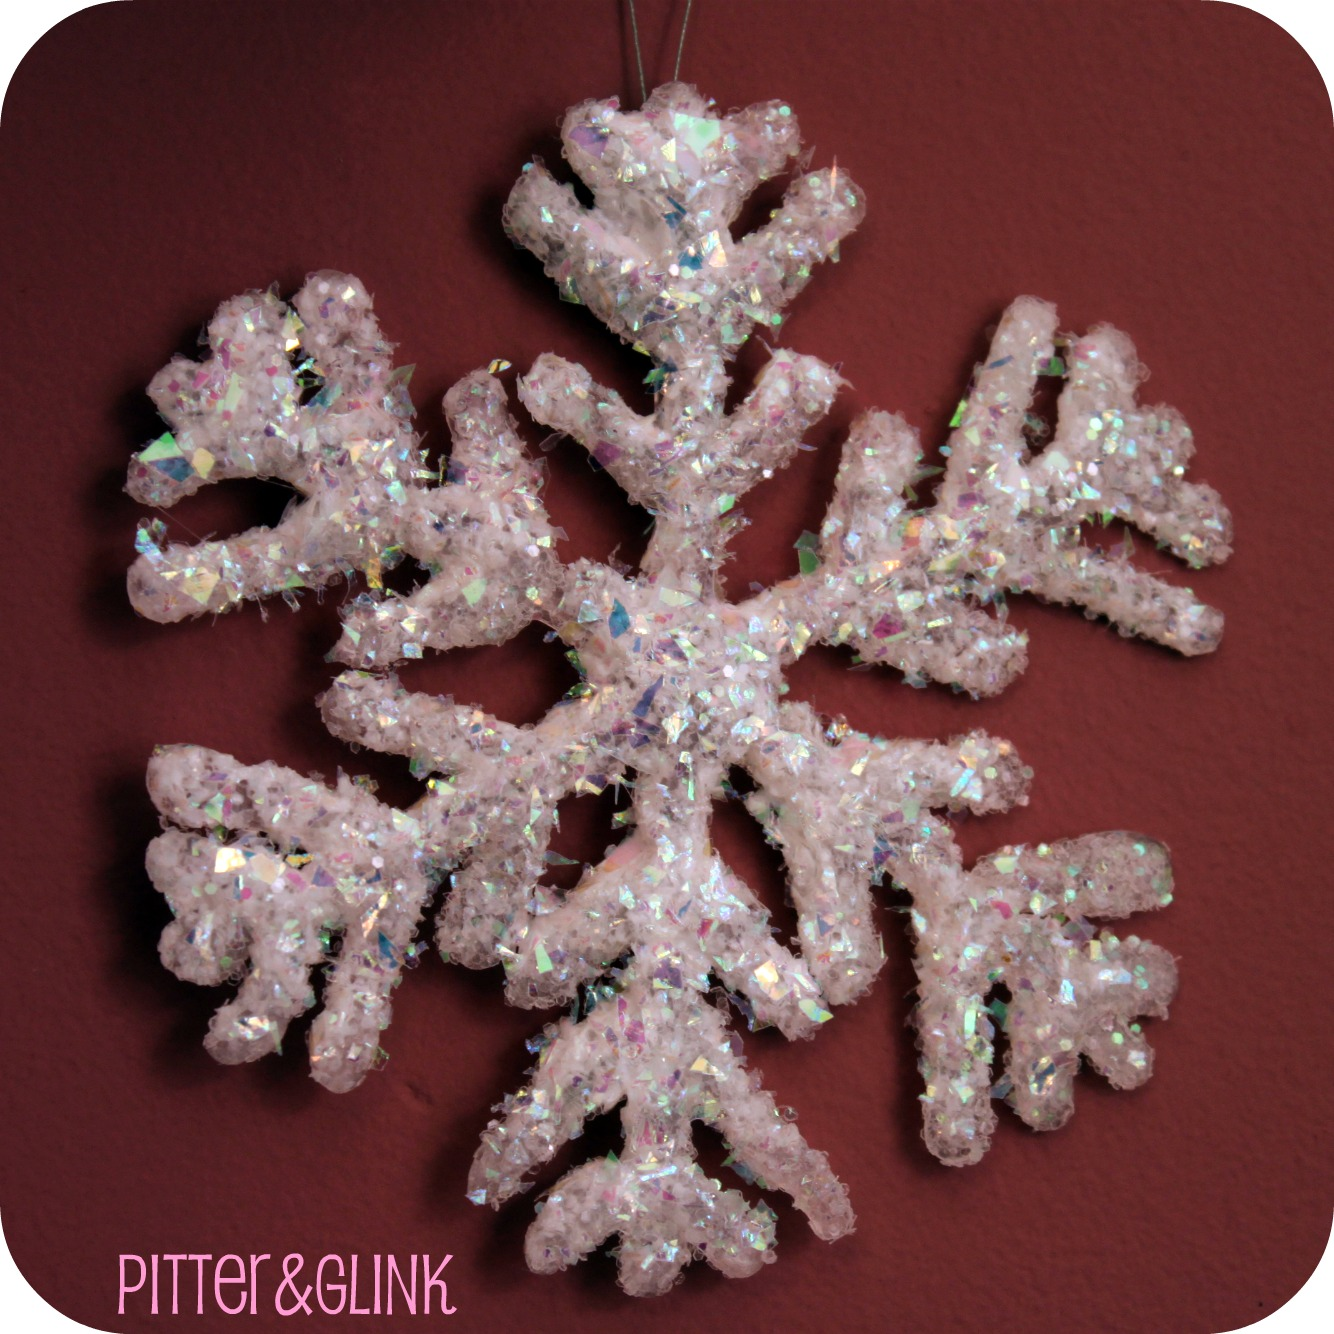 Hot Glue Glittered Snowflake Ornaments Featuring Bethany From Pitter